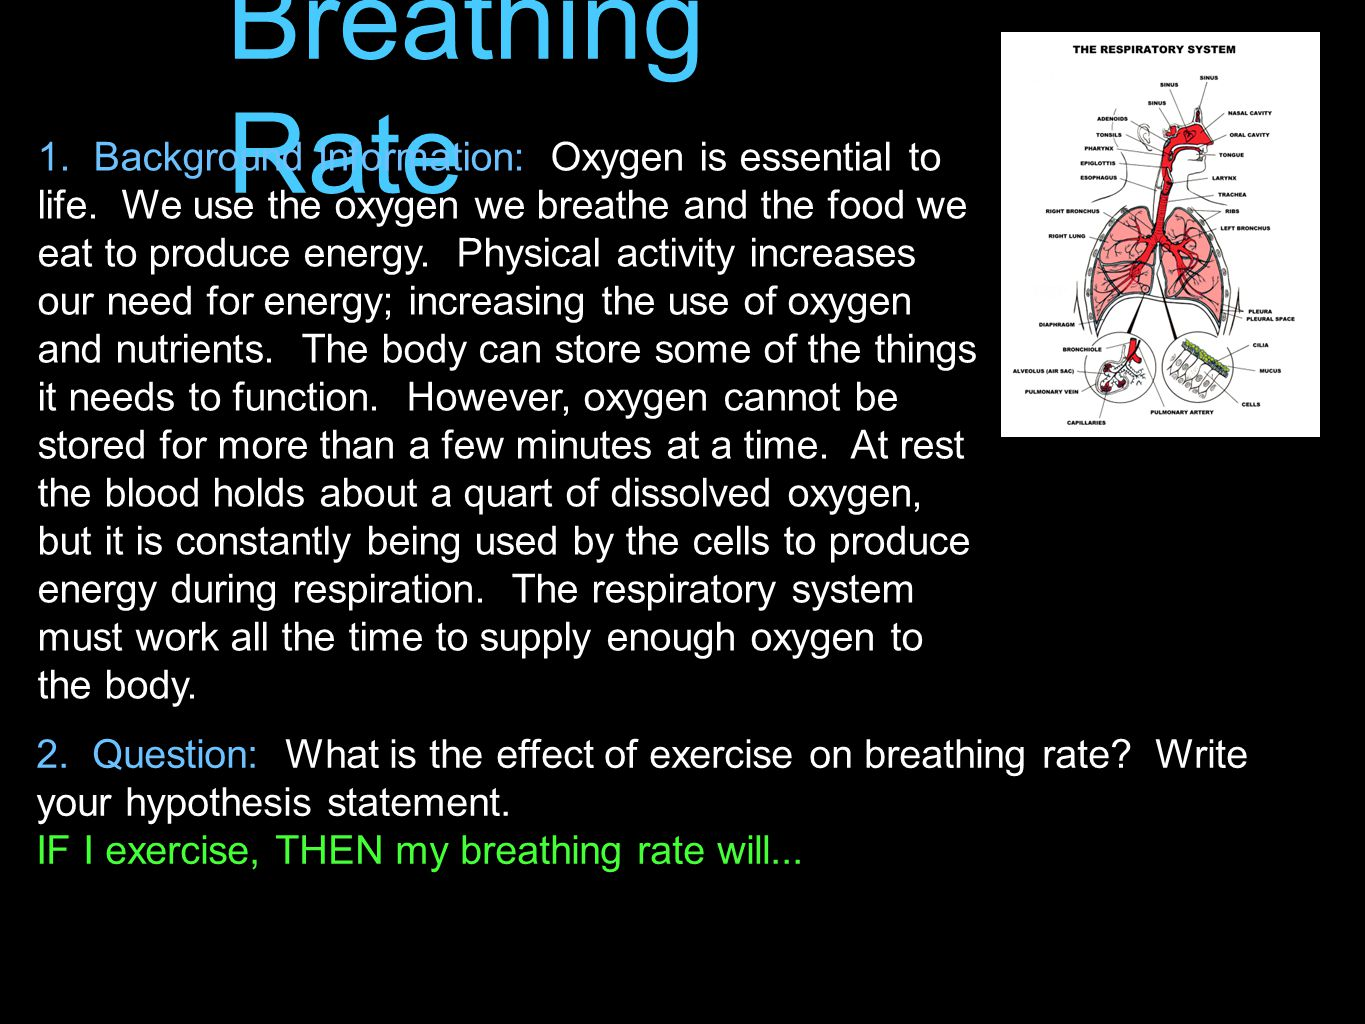 1. Background Information: Oxygen is essential to life. We use the oxygen we breathe and the food we eat to produce energy. Physical activity increase